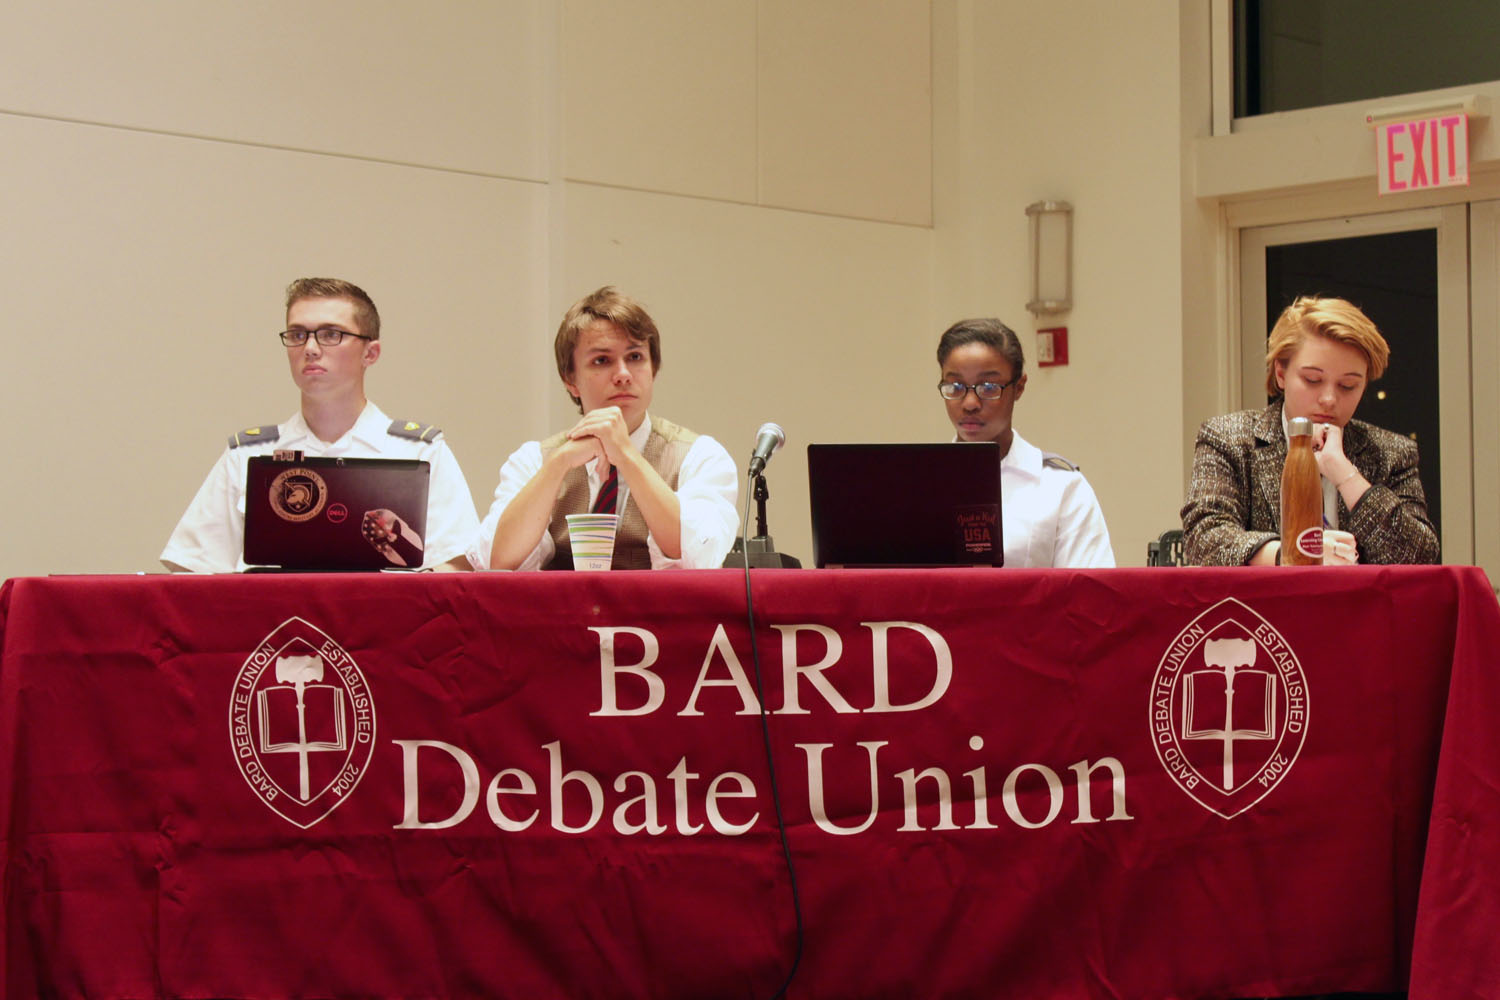 West Point cadets and students in the Bard Debate Union compete on mixed teams in a debate on safe space rhetoric on college campuses. Photos by Sarah Wallock '19.